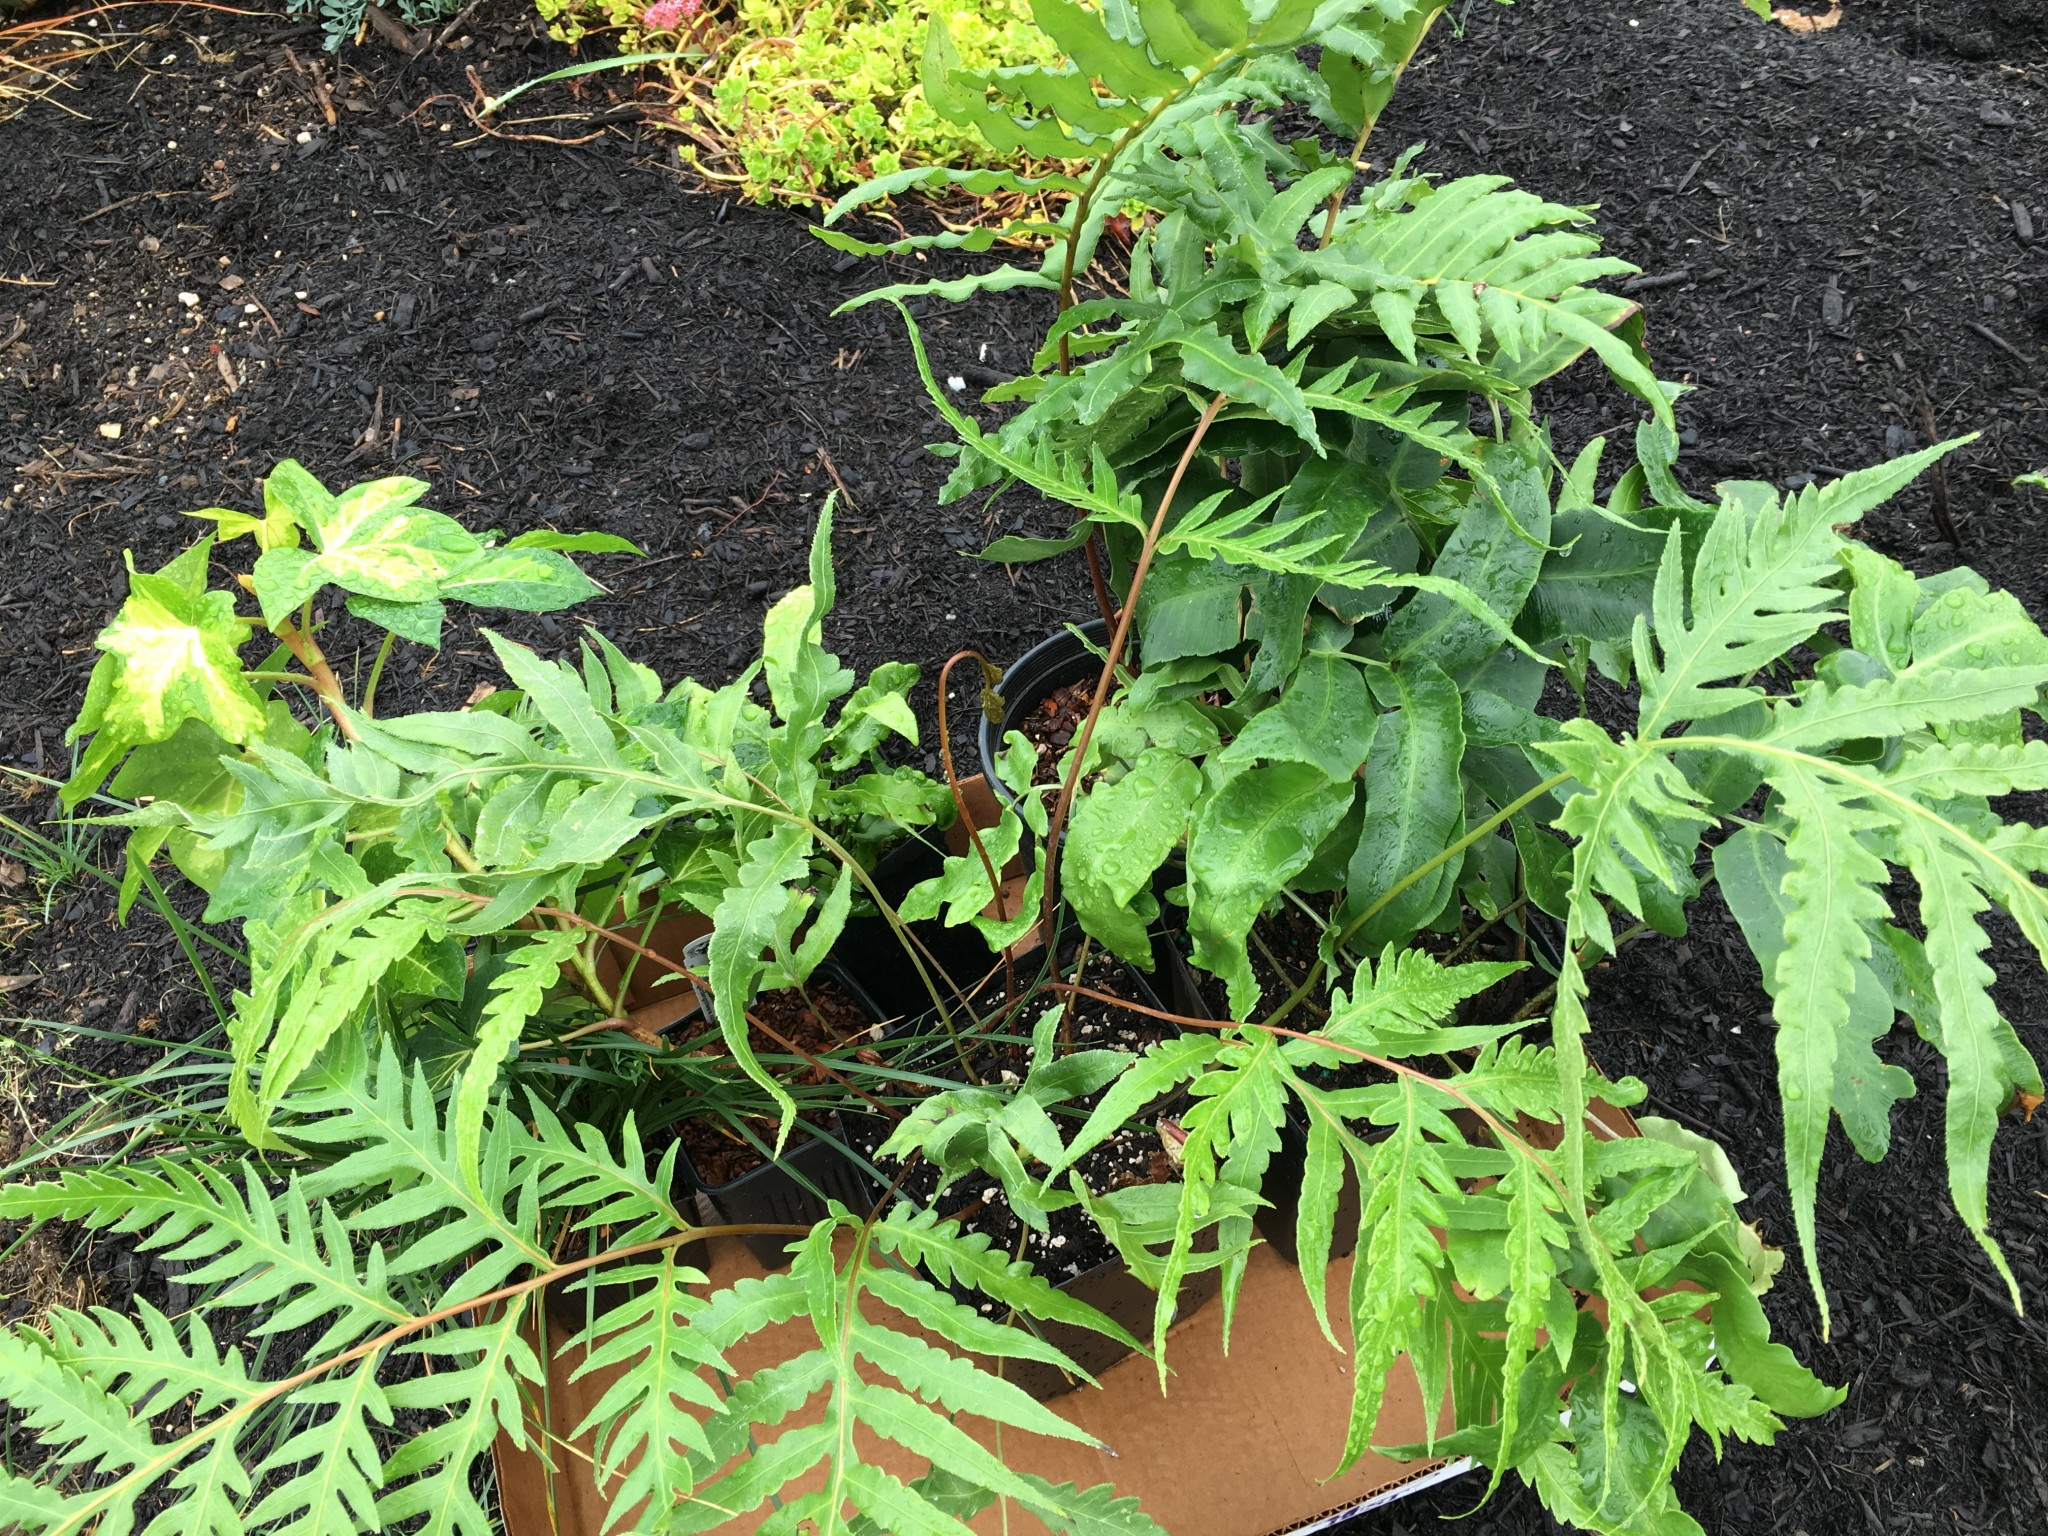 Buy plants. Tuck them in. Fern id to be noted at a later date.